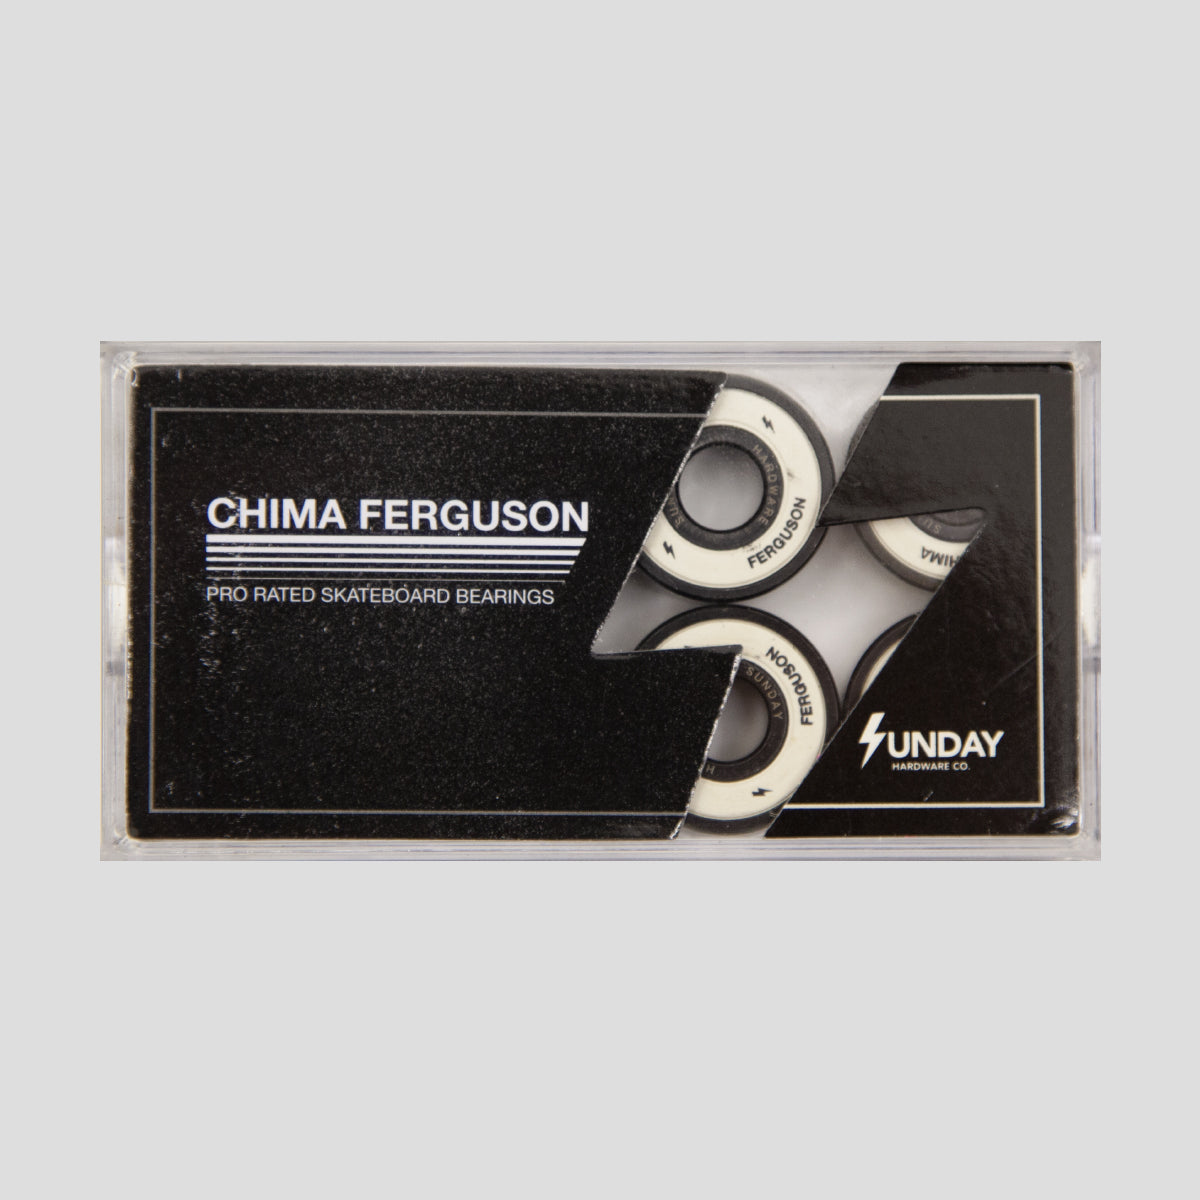 SUNDAY HARDWARE CHIMA FERGUSON PRO RATED BEARINGS